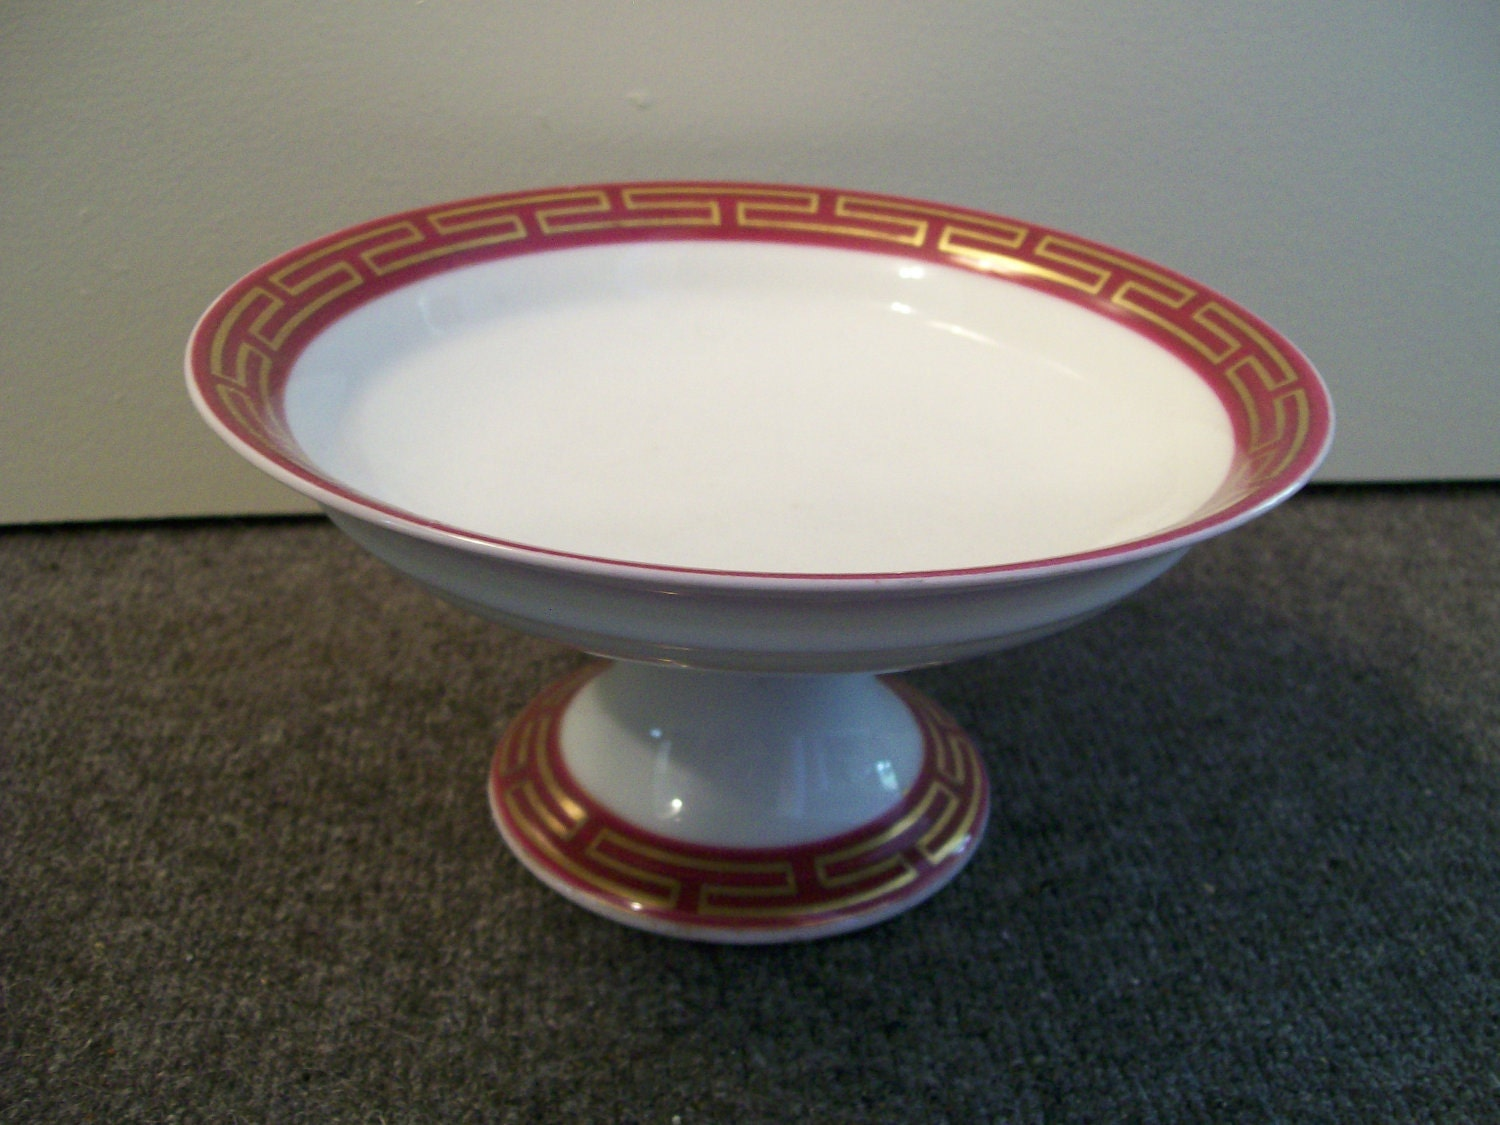 antique porcelain Greek key compote bowl 1860s